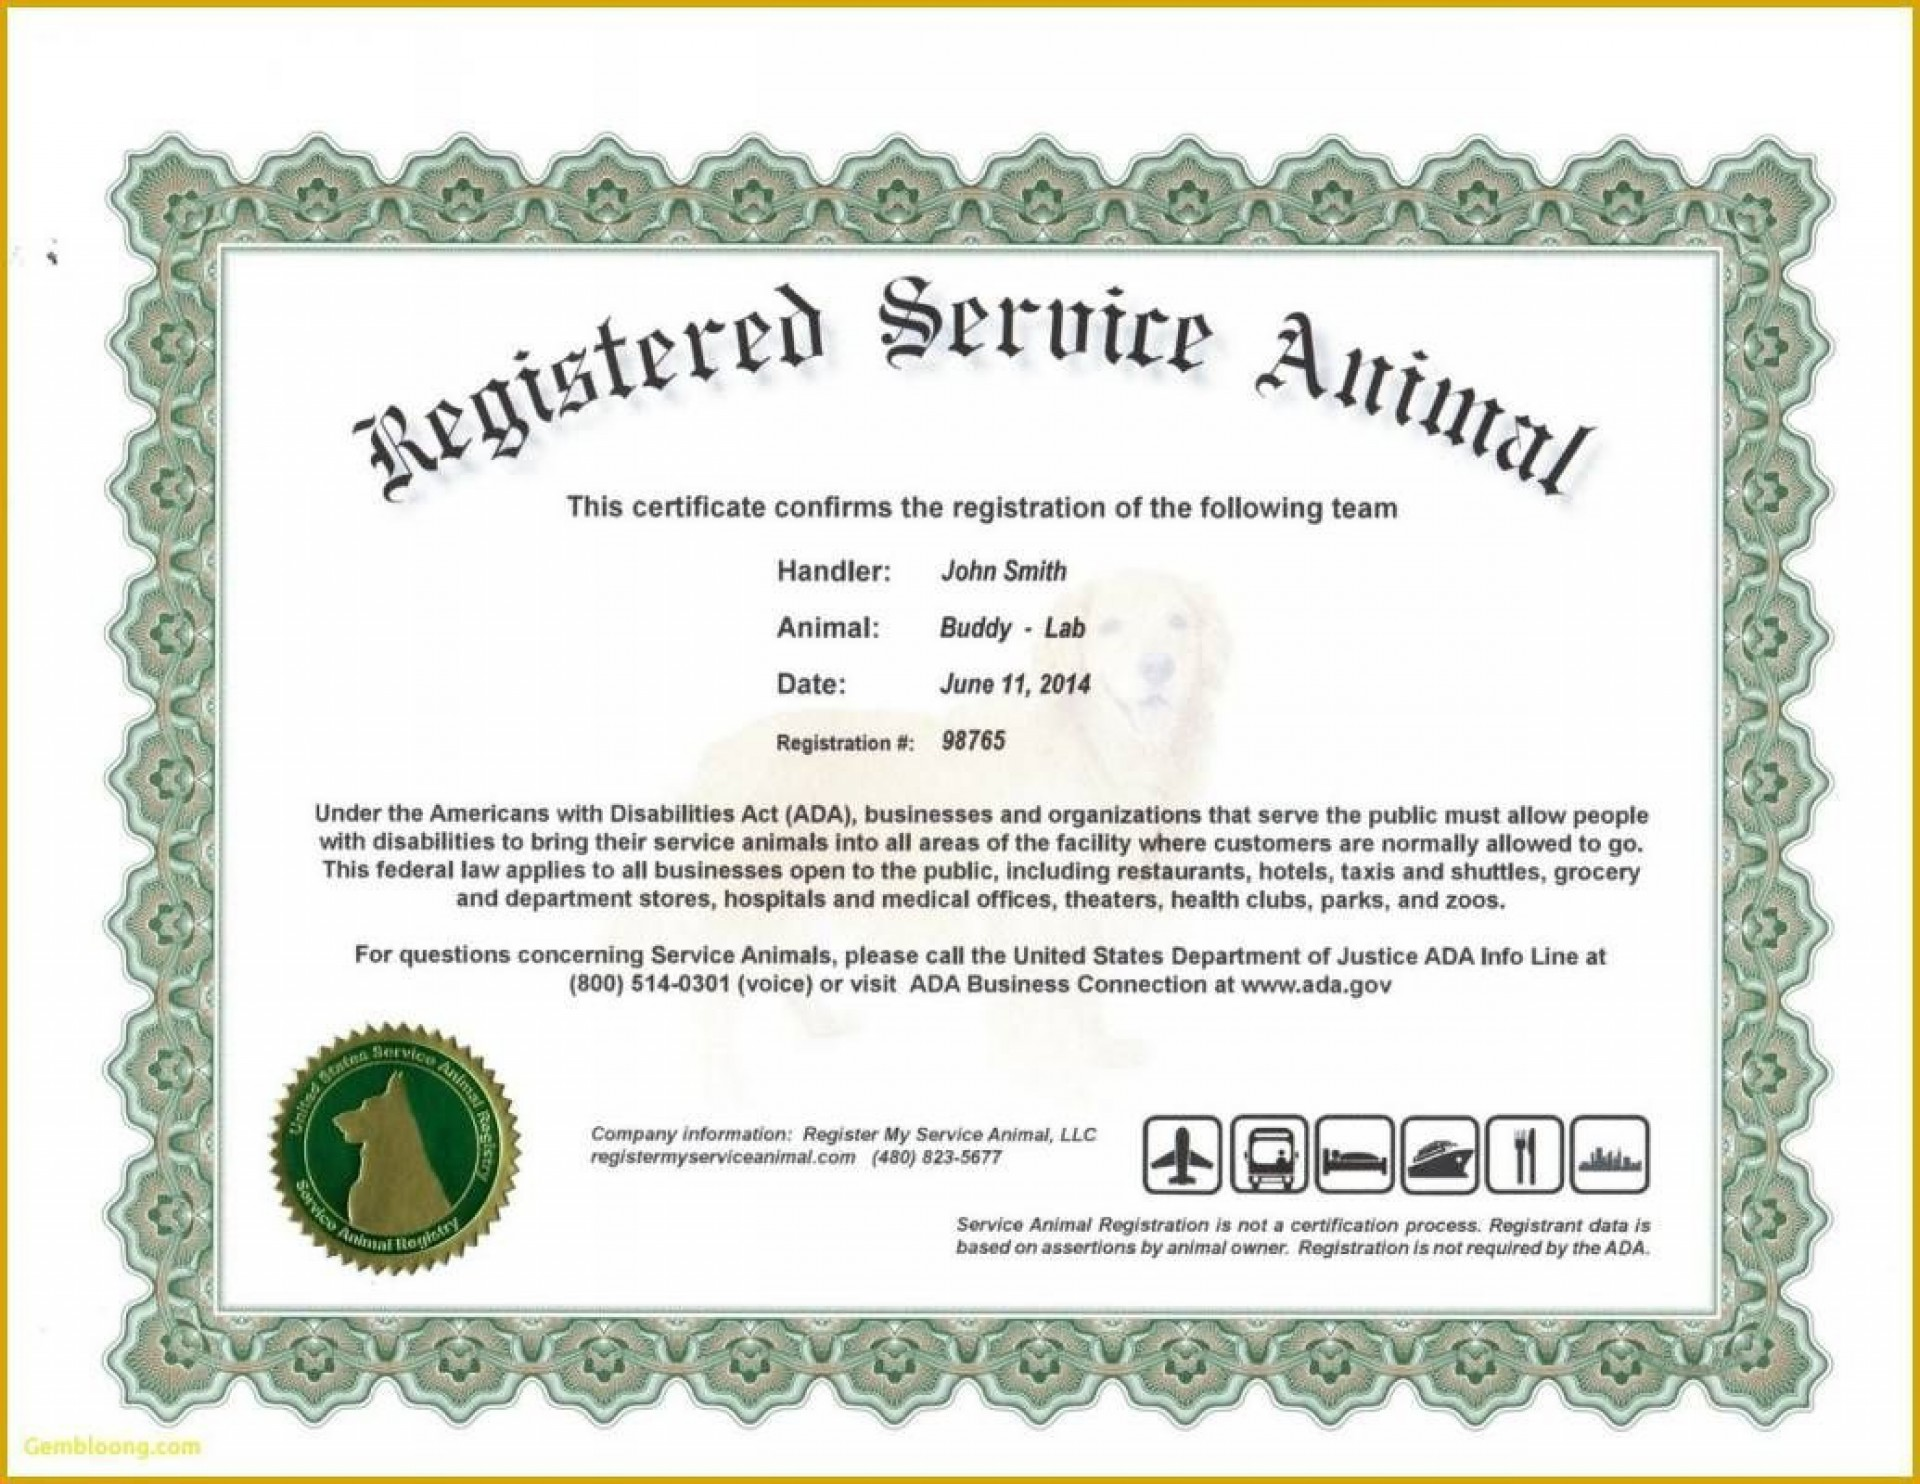 008 Magnificent Service Dog Certificate Template Photo  Printable Id Free1920